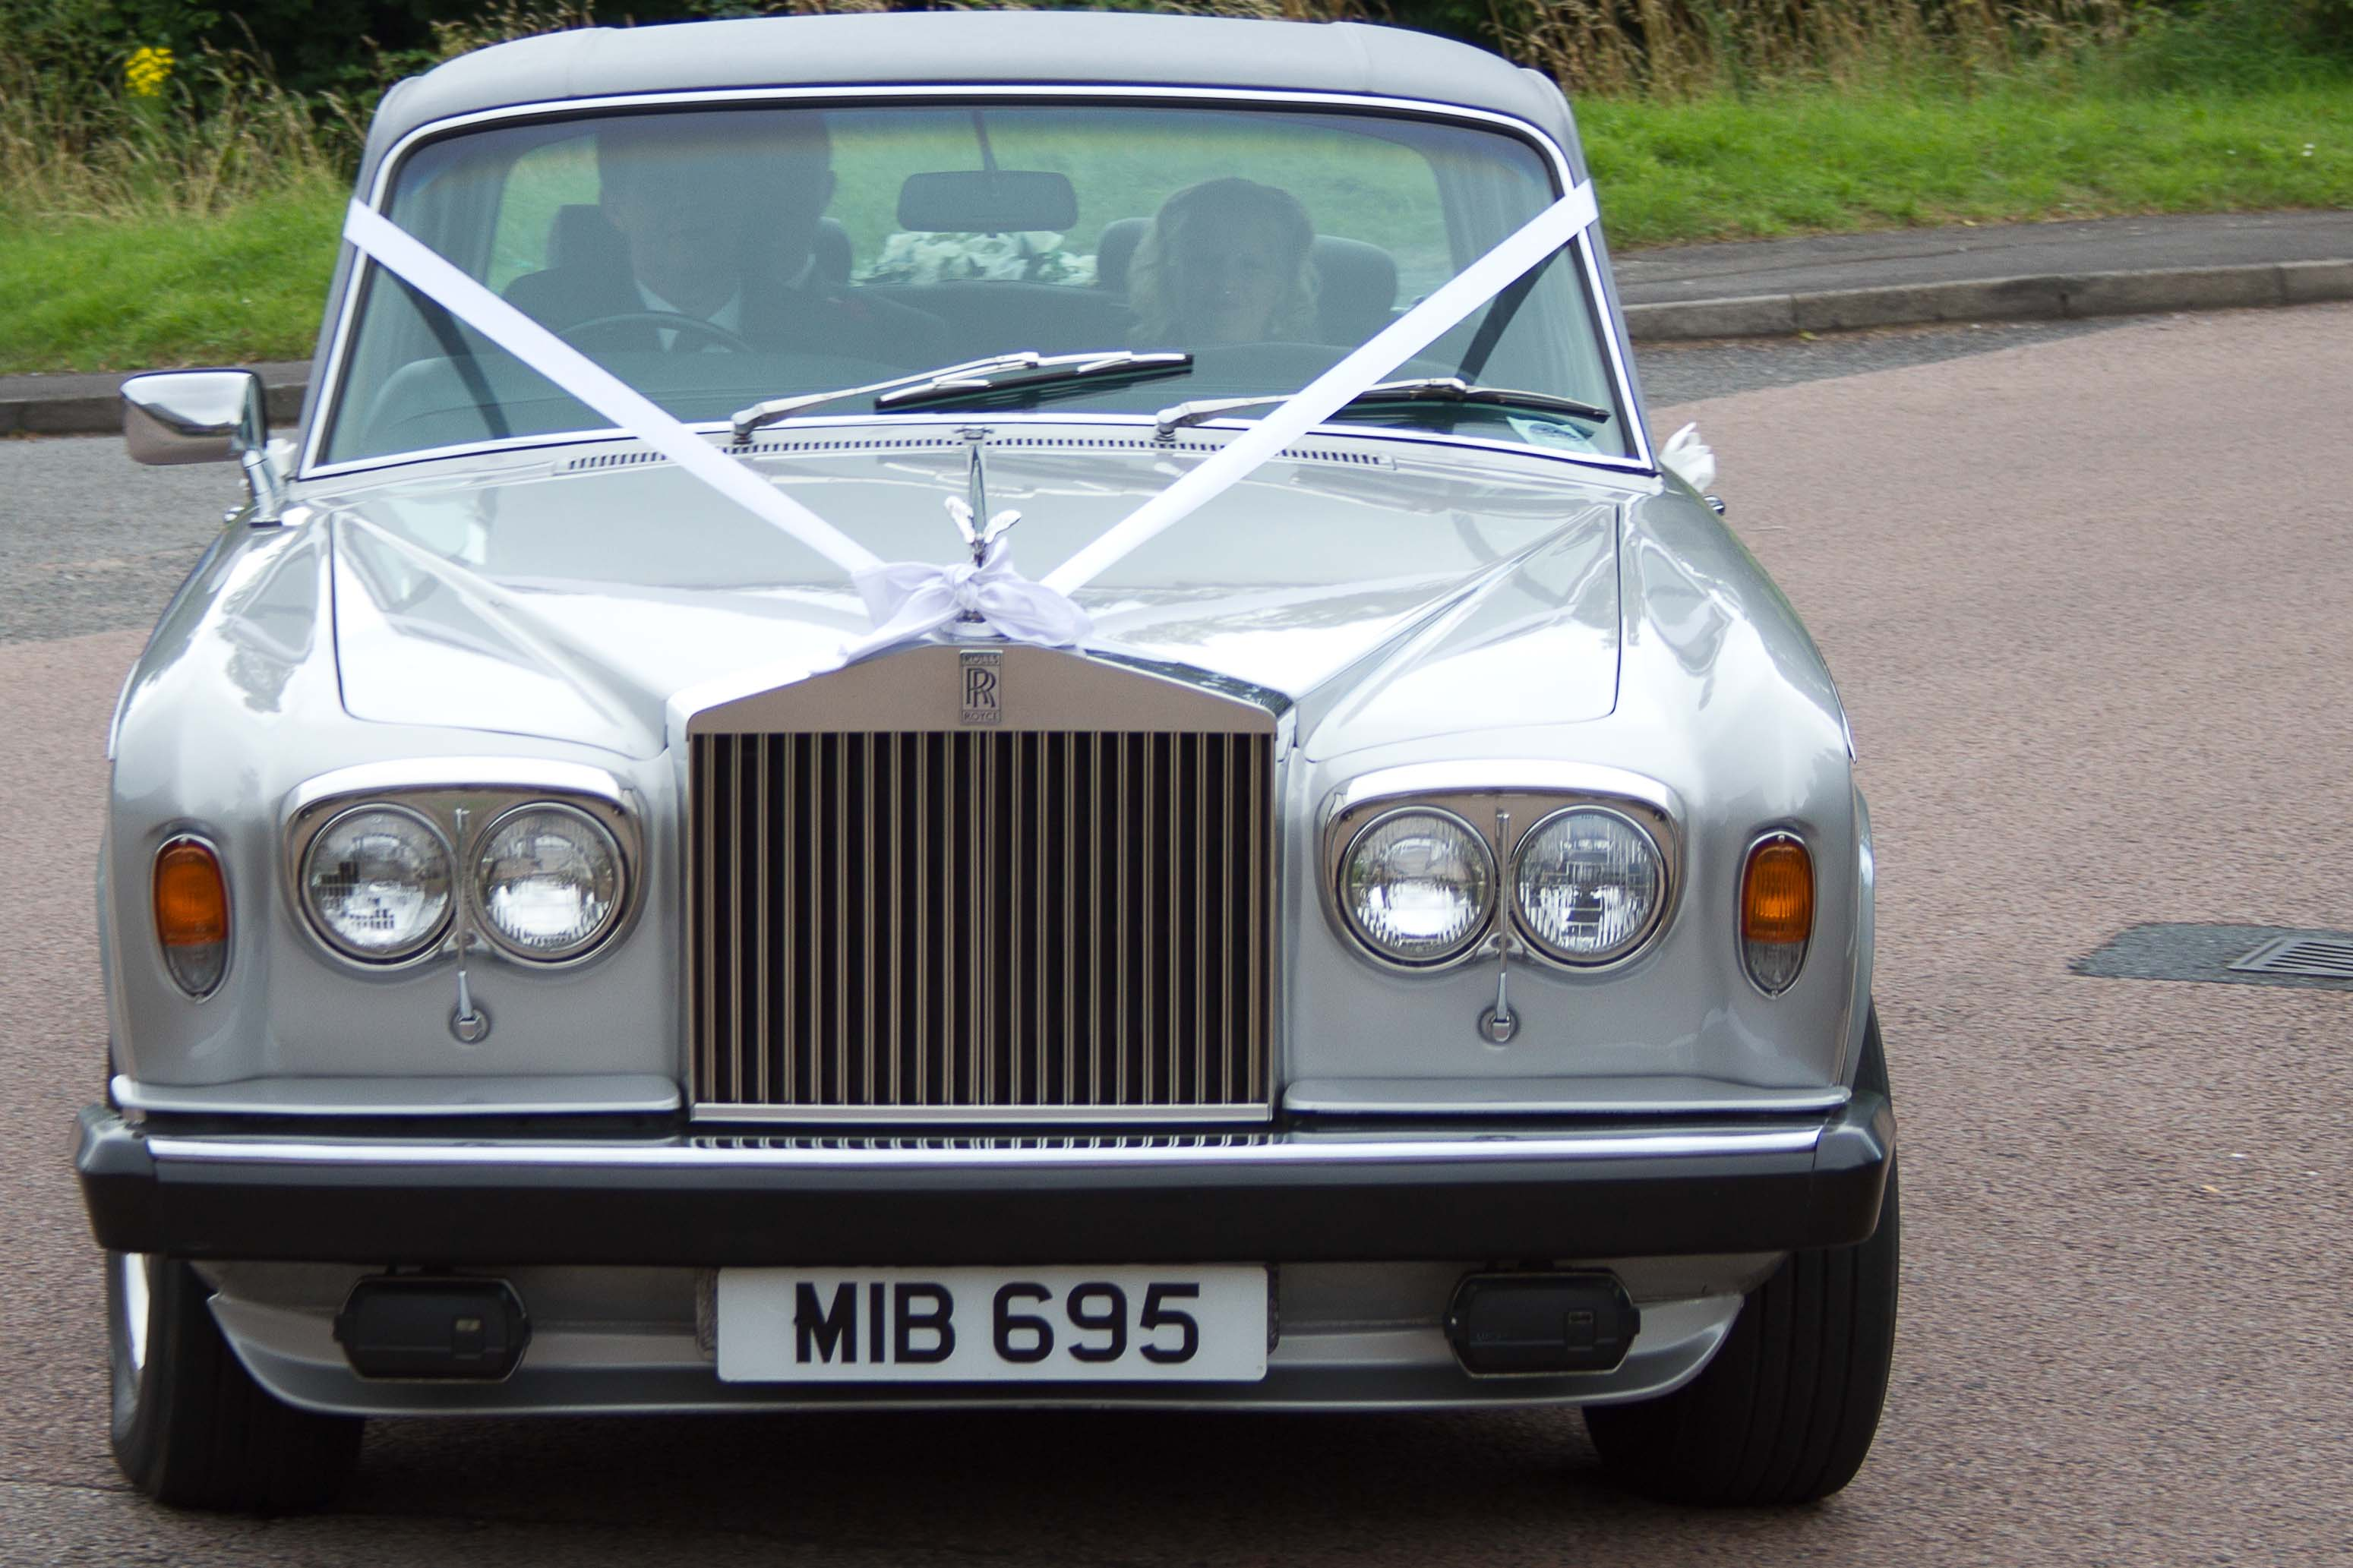 rolls royce silver shadow hire gillingham kent wedding car hire gillingham kent choice. Black Bedroom Furniture Sets. Home Design Ideas